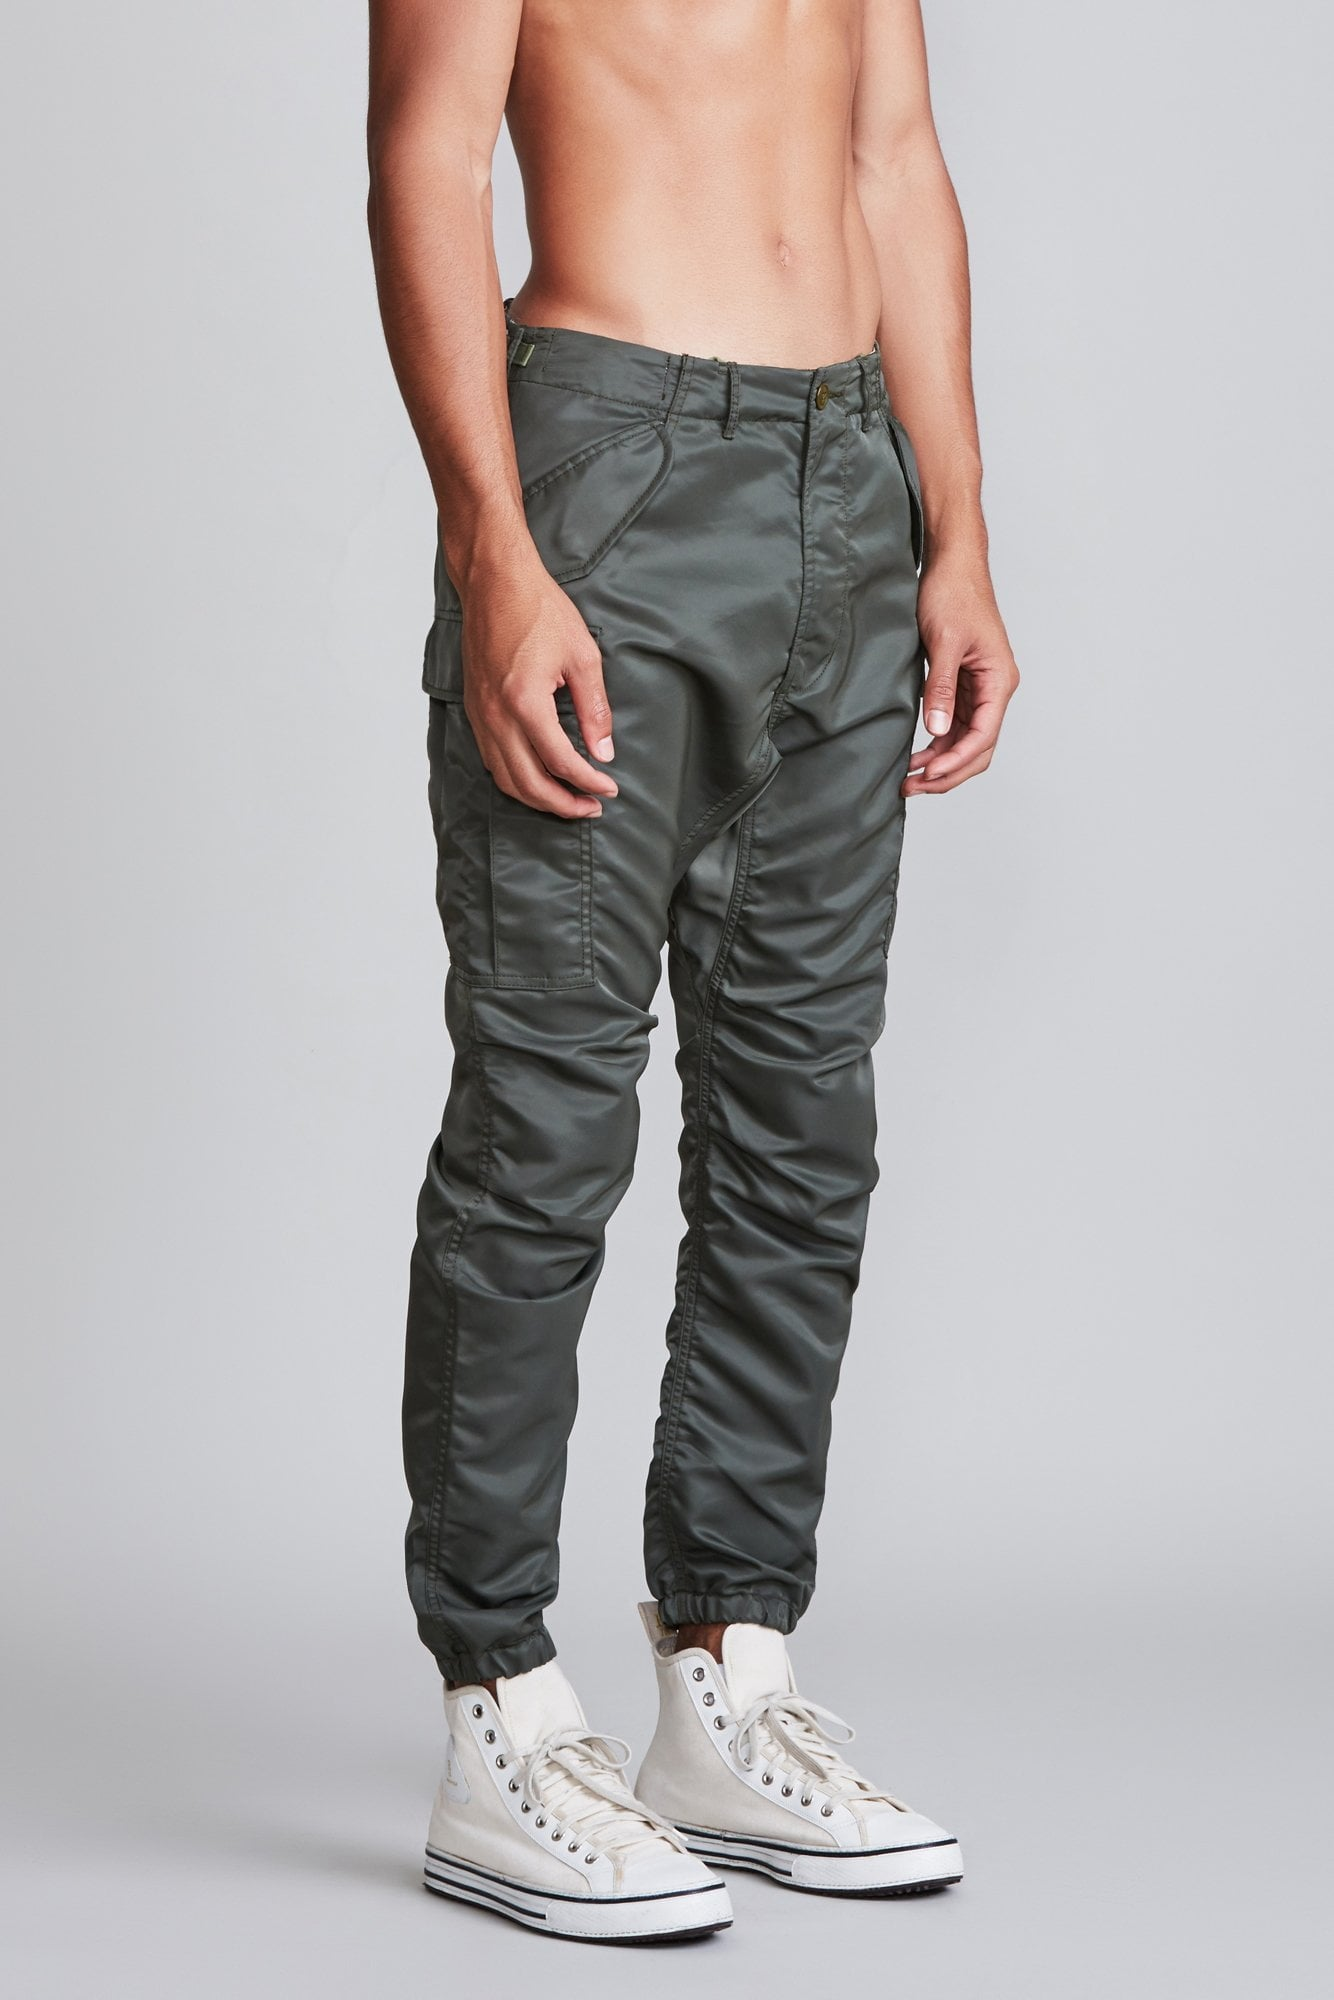 Military Cargo Pants - Olive